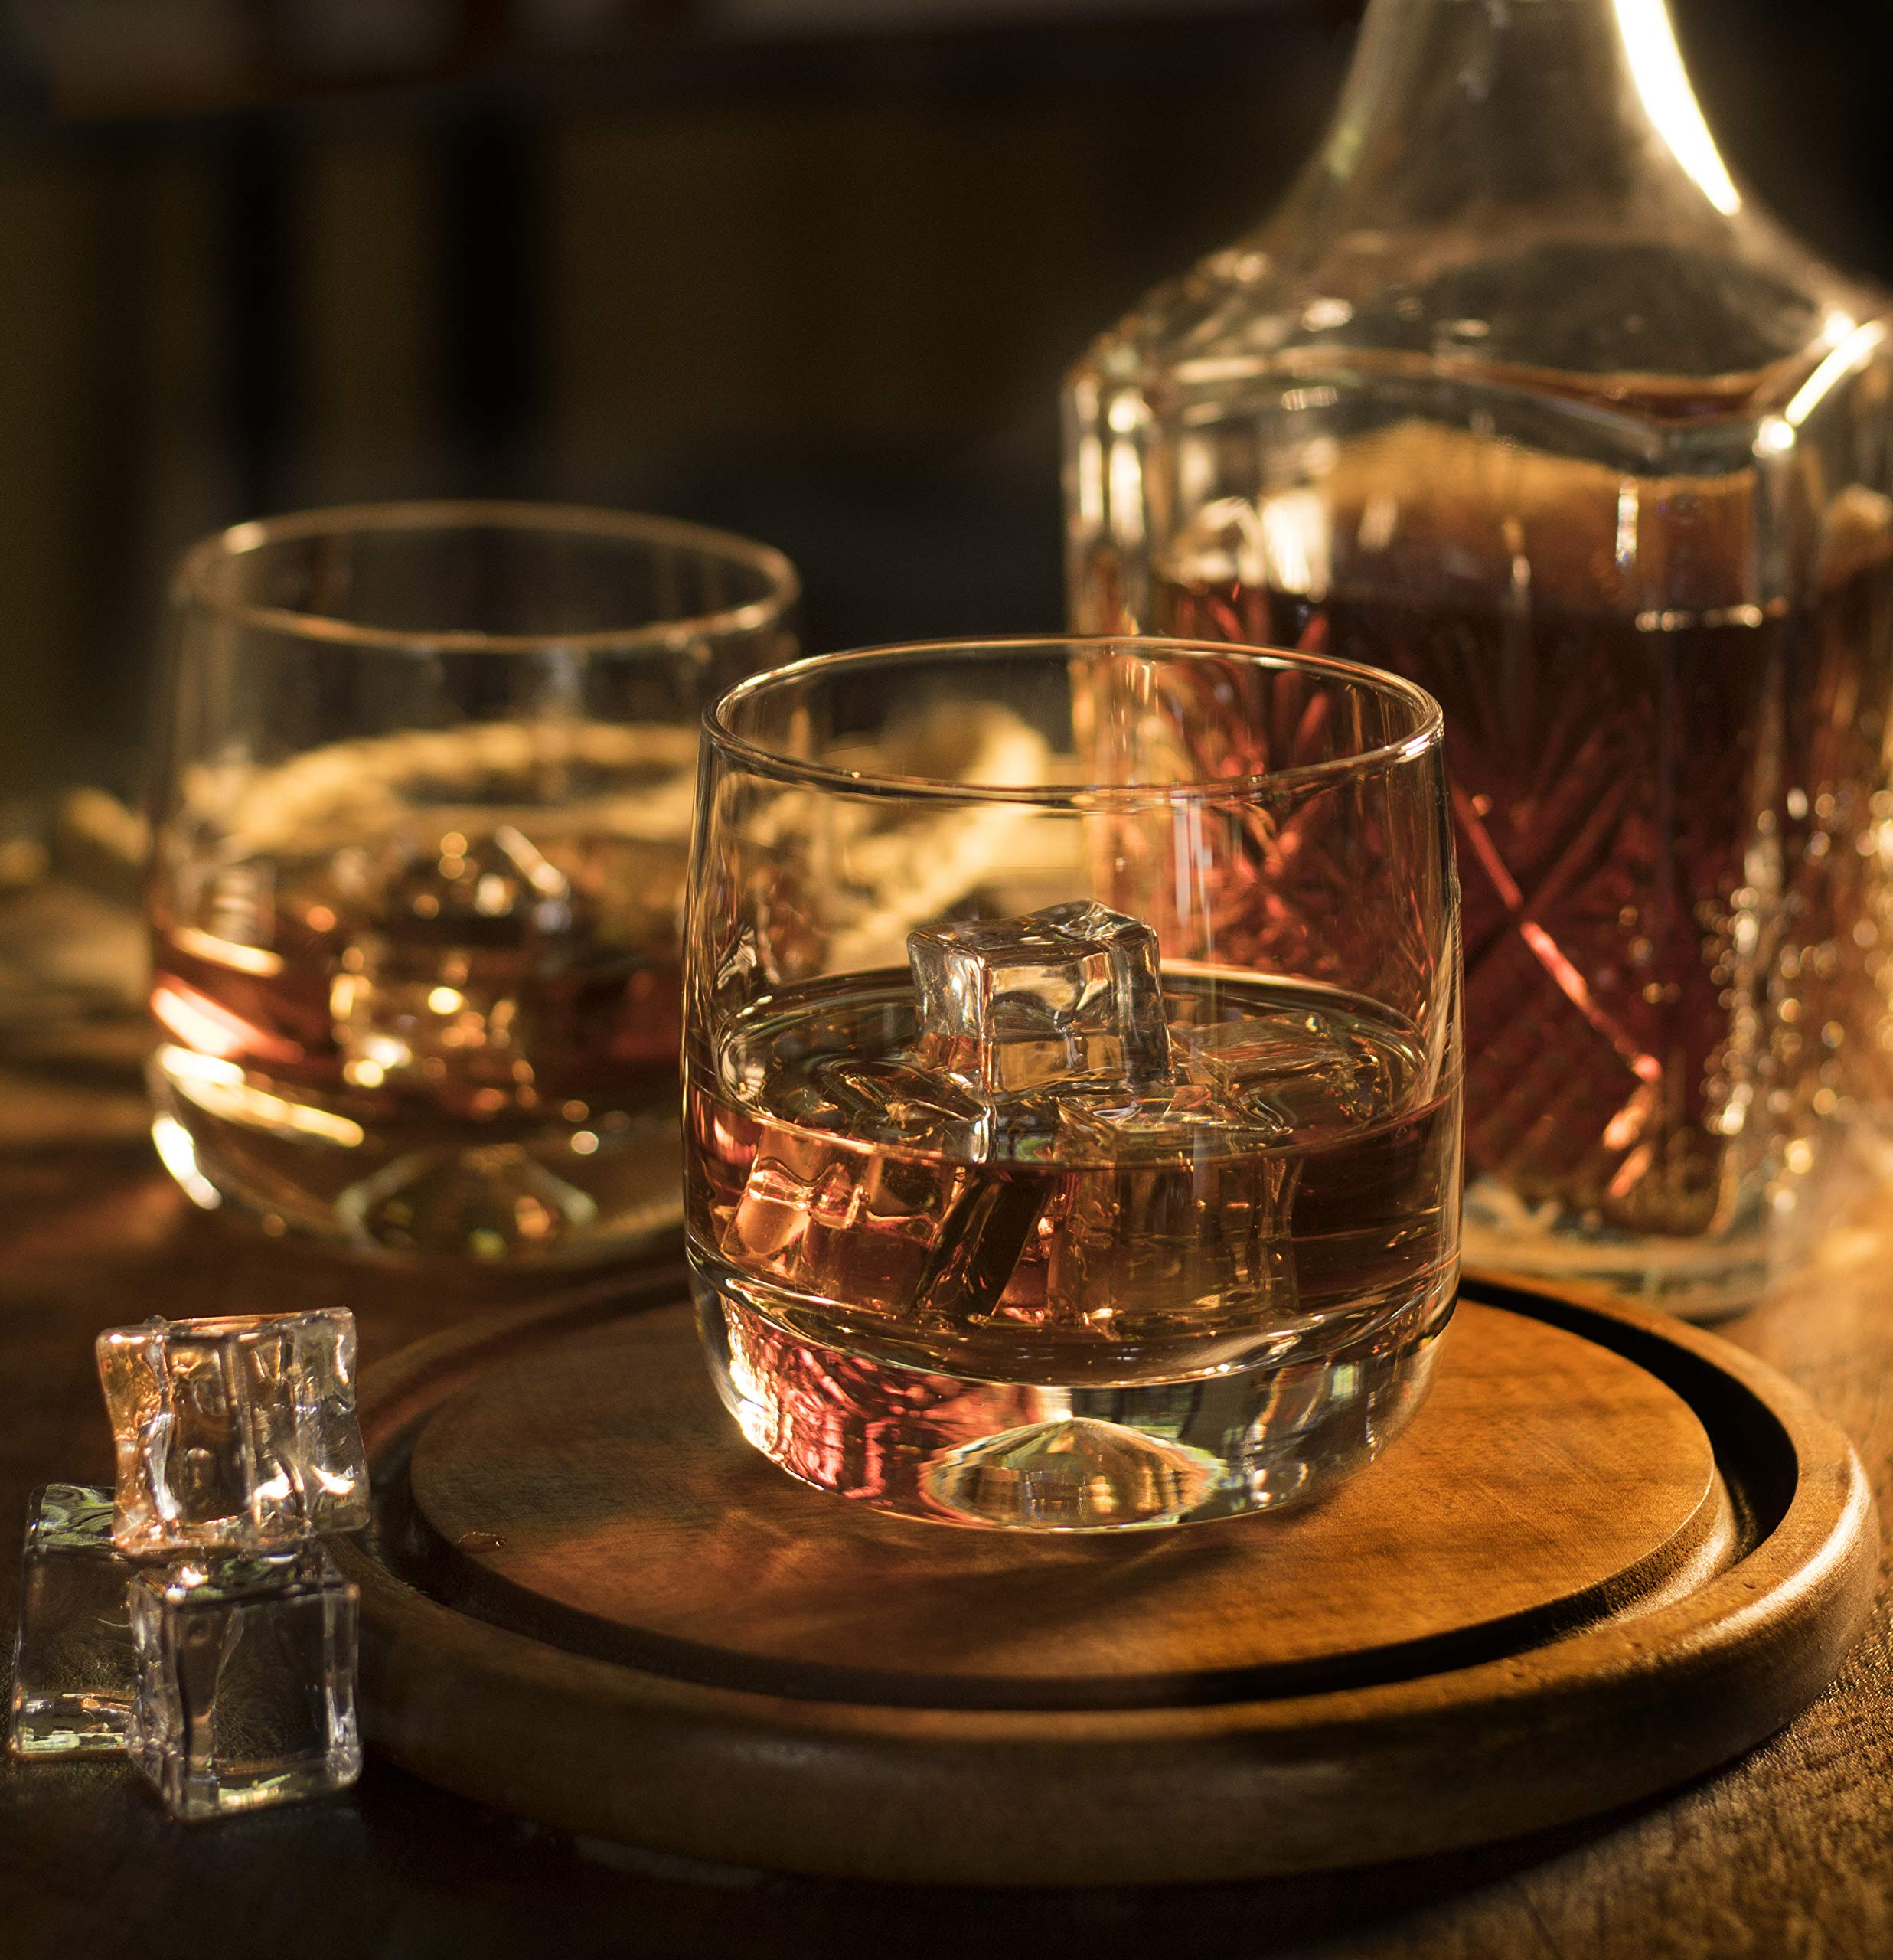 Premium Whiskey Glasses - Large - 12oz Set of 2 - Lead Free Hand Blown Crystal - Thick Weighted Bottom - Seamless Handmade Design - Perfect for Scotch, Bourbon, Manhattans, Old Fashioned's, Cocktails. by Mofado (Image #6)